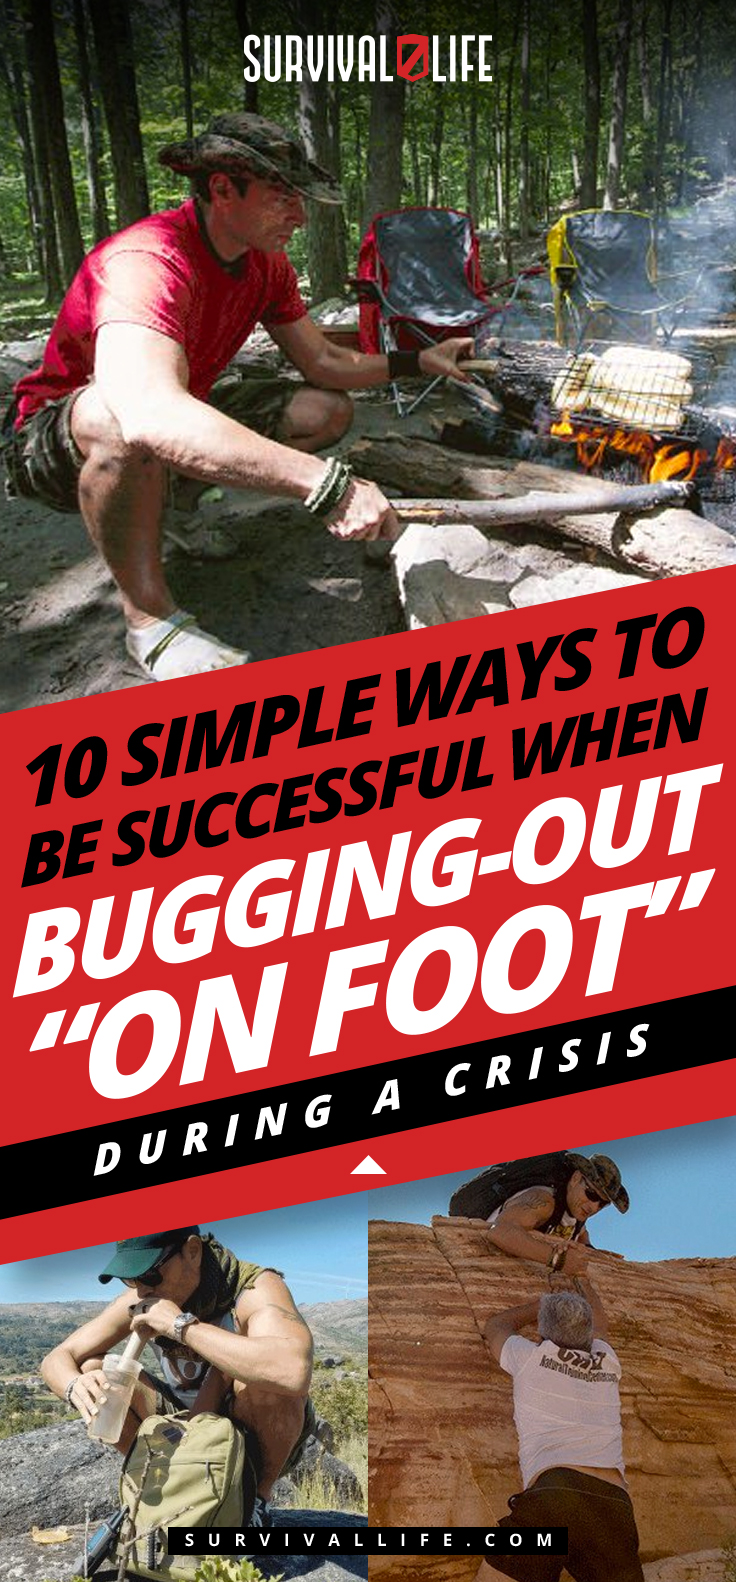 """10 Simple Ways To Be Successful When Bugging-Out """"On Foot"""" During A Crisis"""